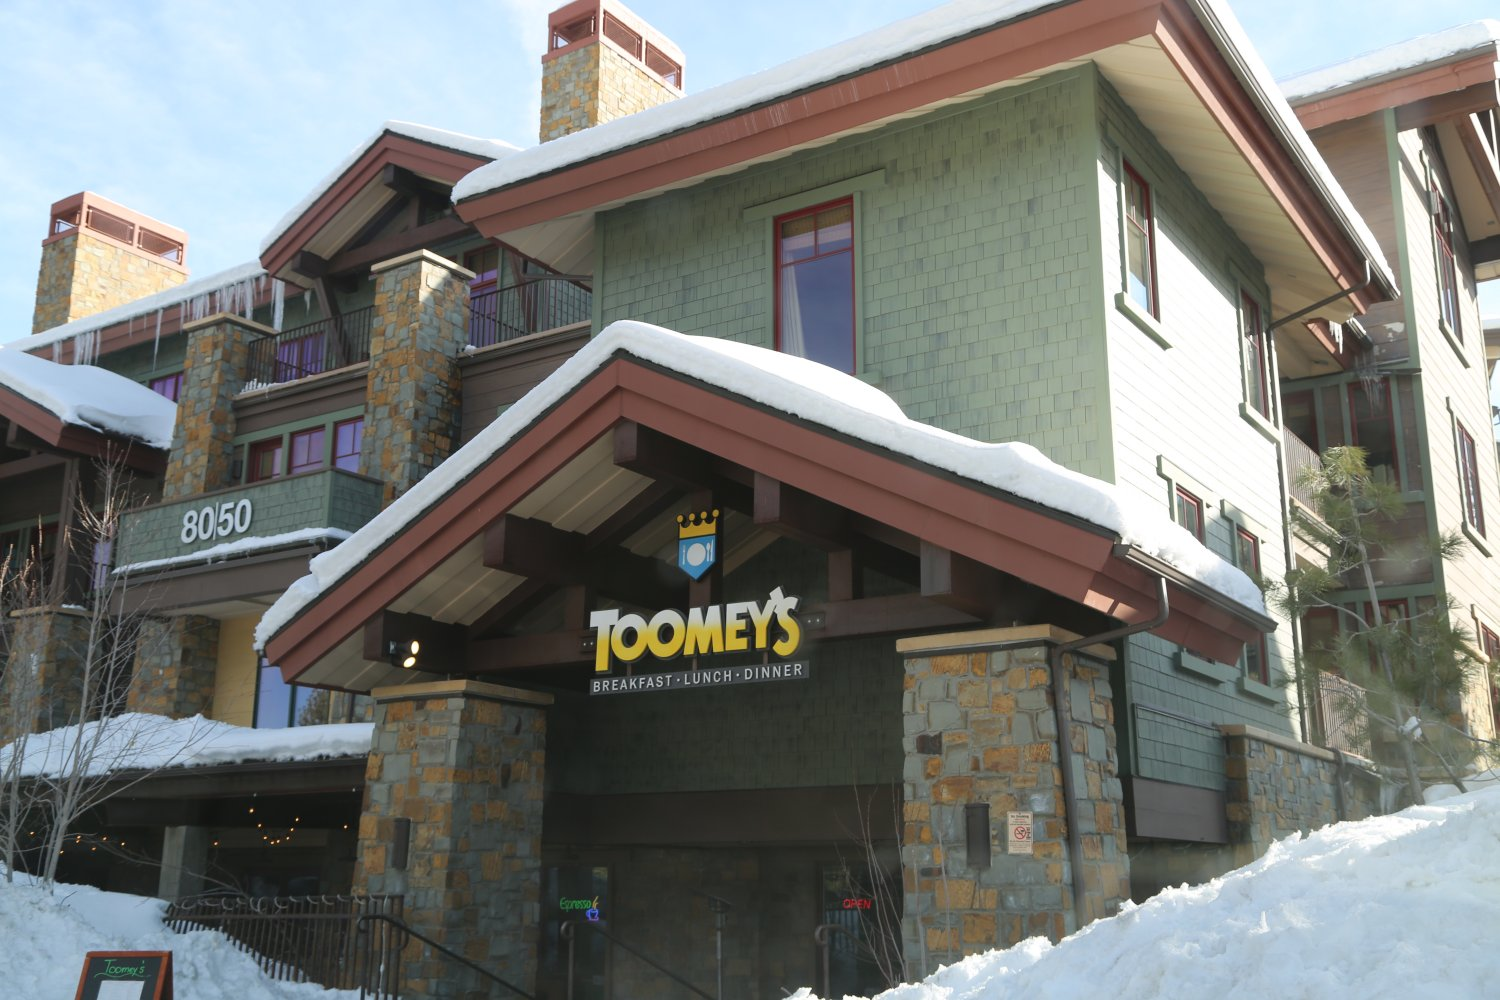 Toomey S Is Located In The Village At Mammoth Lakes Address 6085 Minaret Rd Founded 2002 By Matt A Chef Who Used To Make Sandwiches